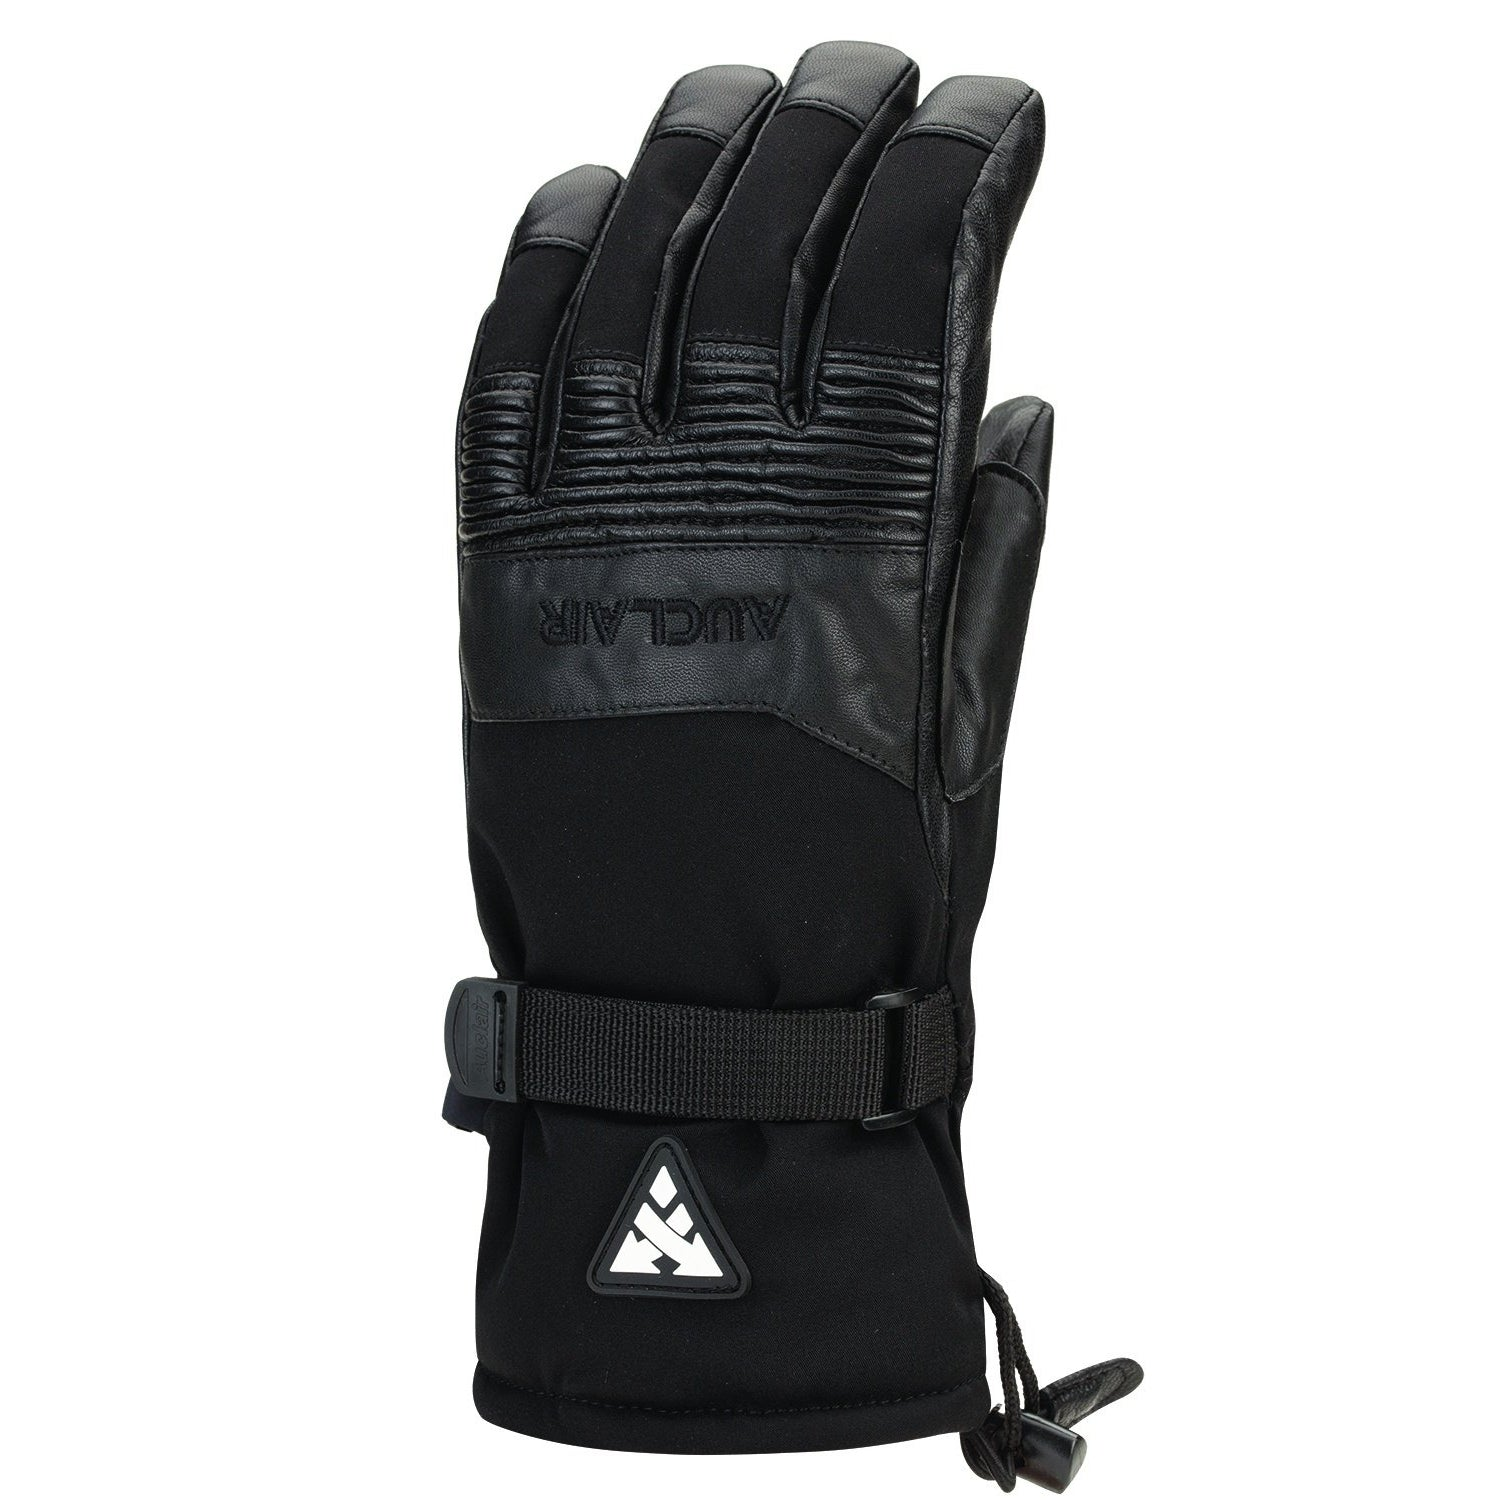 Auclair 2021 Traverse Glove